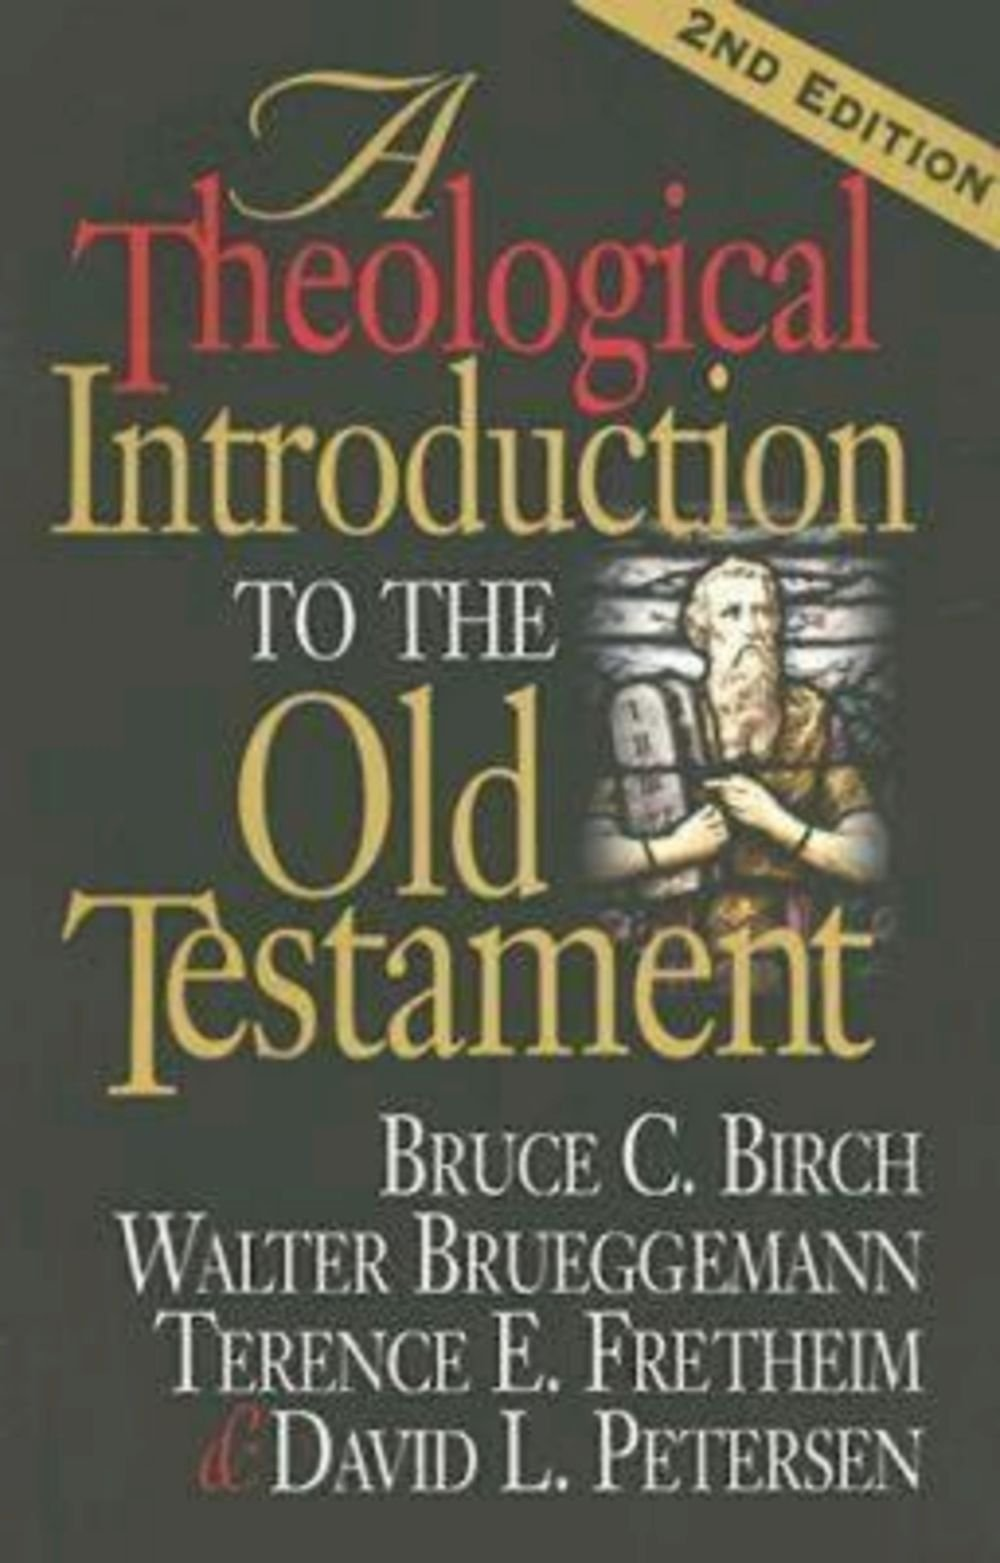 Literature craft and voice 2nd edition - A Theological Introduction To The Old Testament 2nd Edition Walter Brueggemann Bruce C Birch Terence E Fretheim David L Petersen 9780687066766